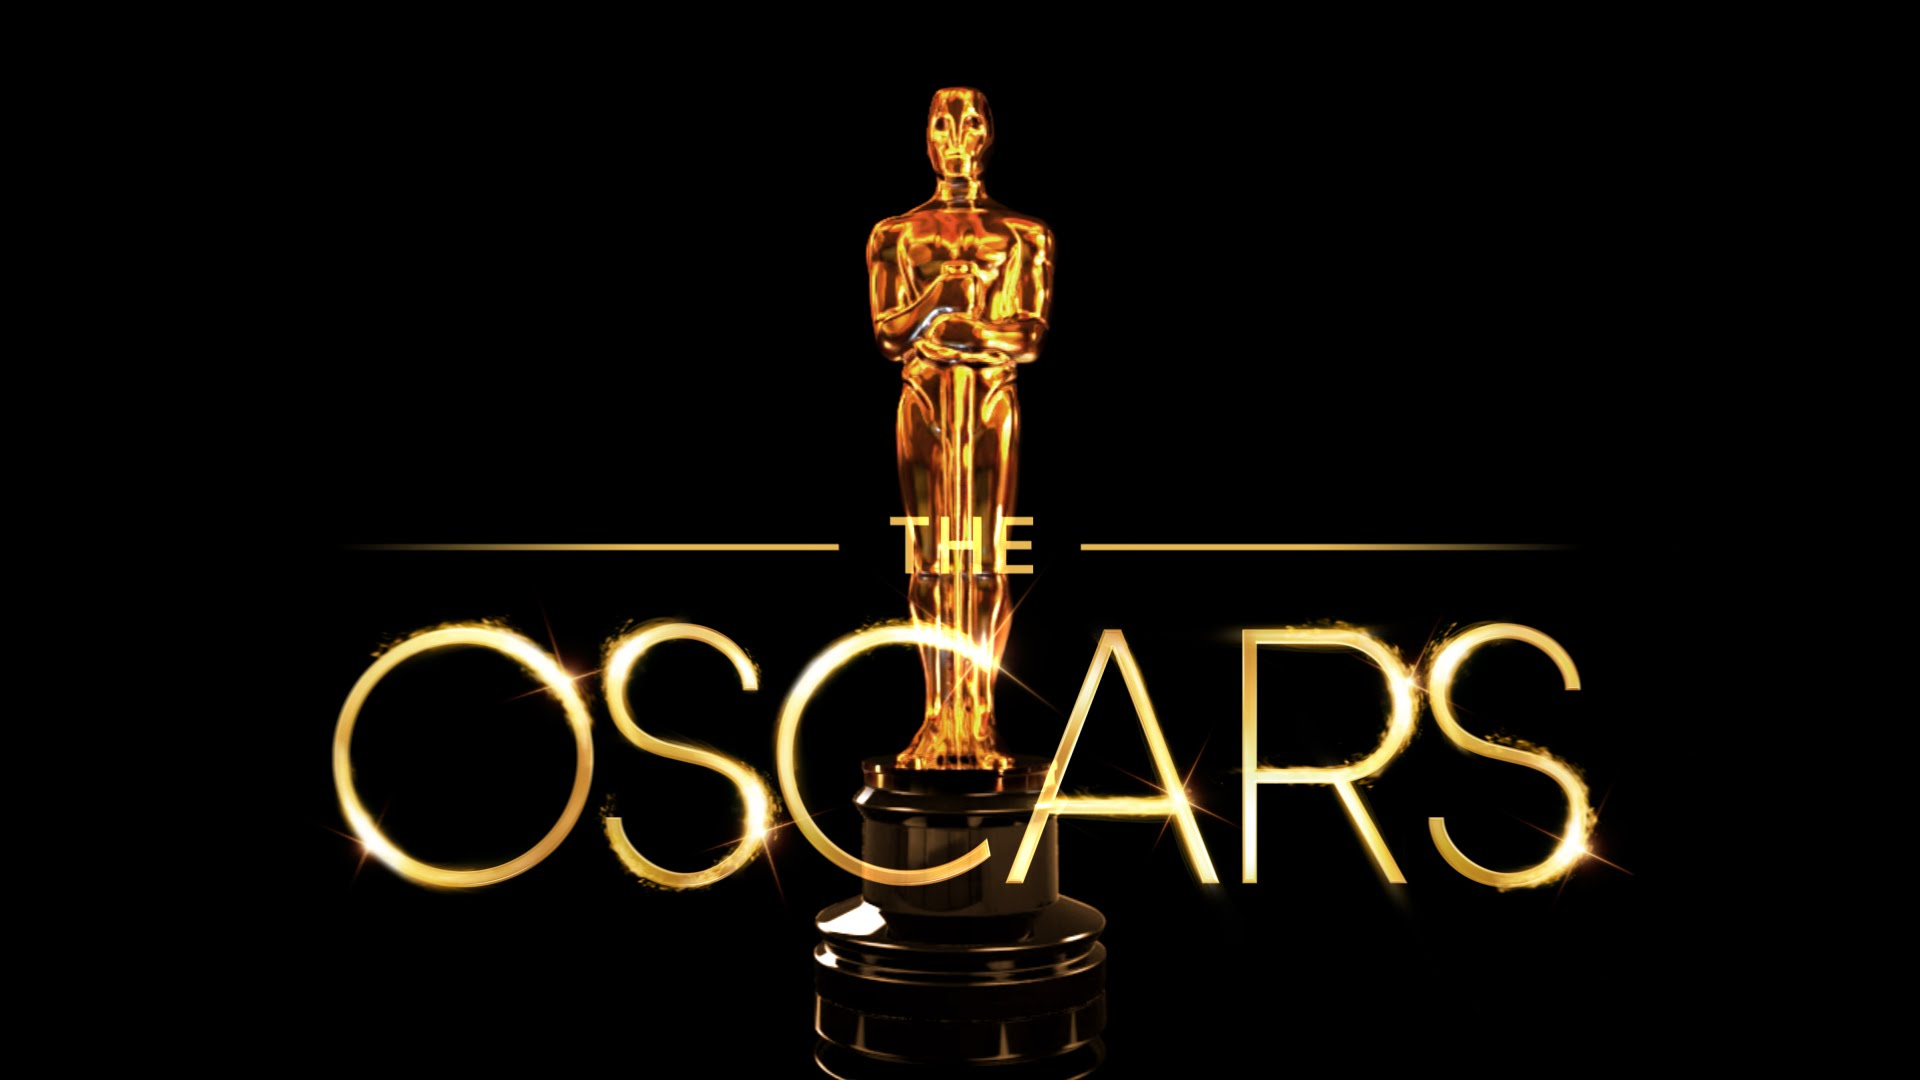 The Hudsucker Takes on the 89th Annual Academy Awards: Predictions, Hopes and Snubs